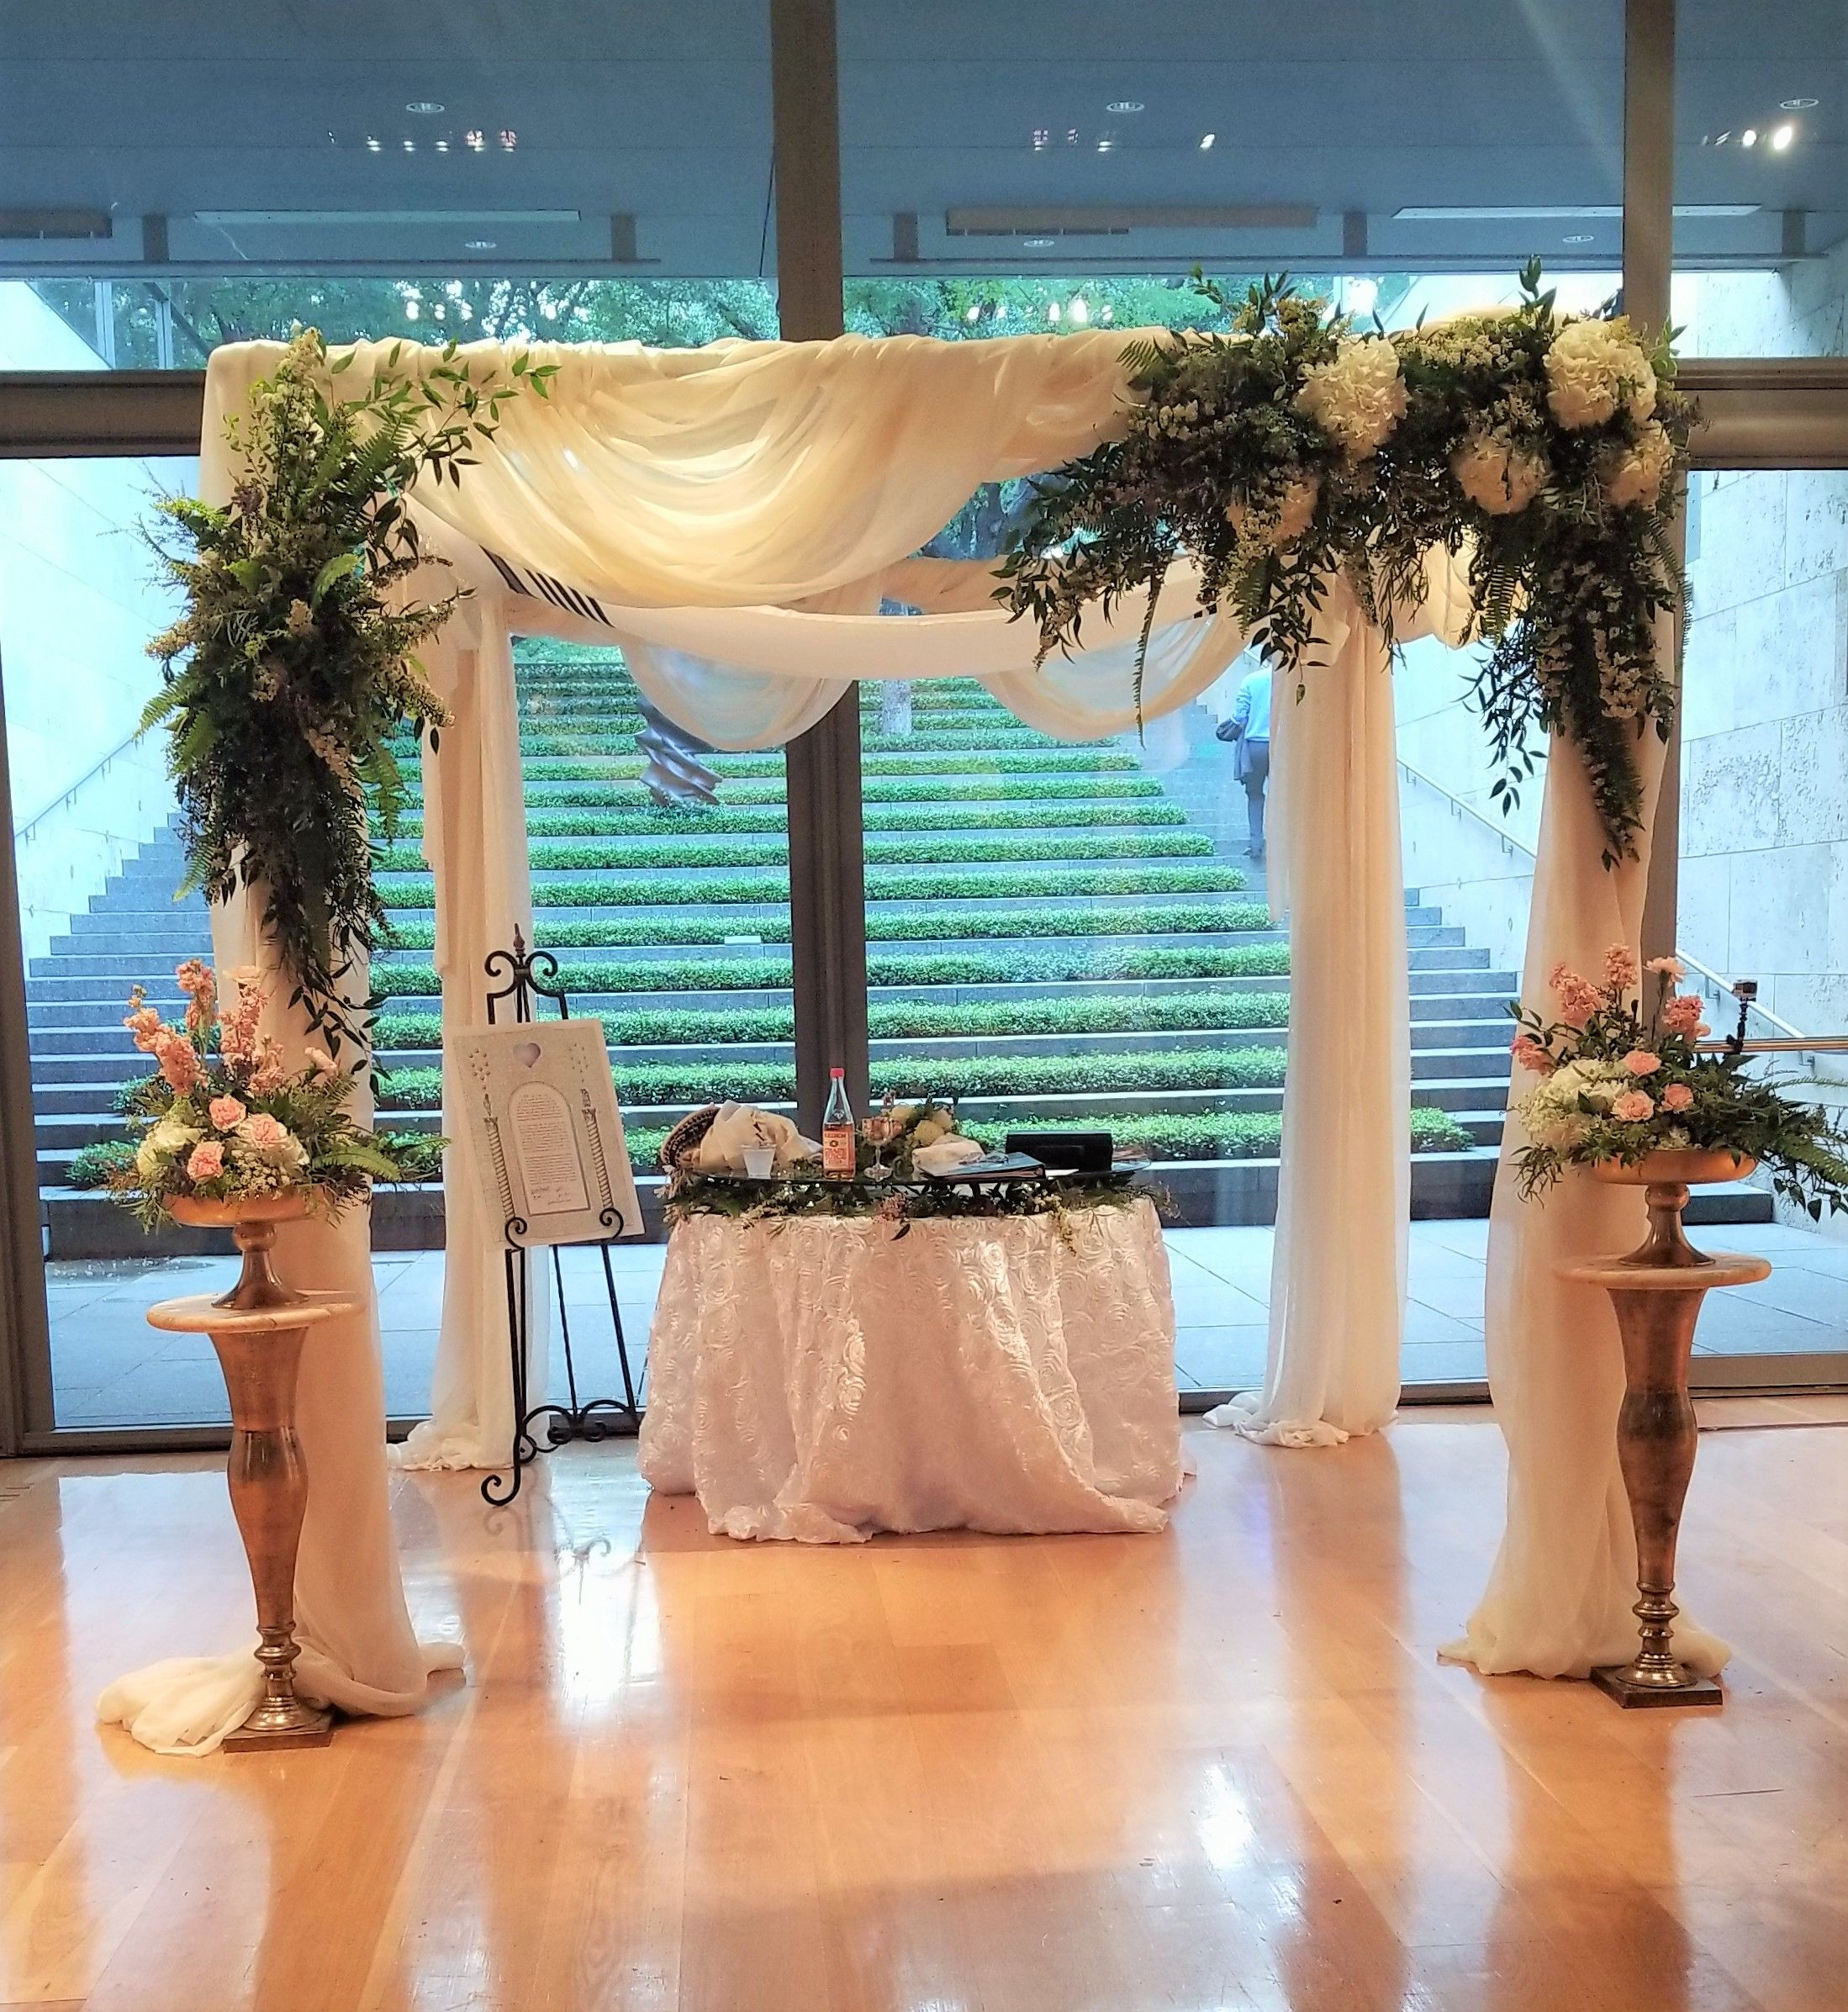 Our Chuppah Structure Setup Adnddecorated At The Sculpture